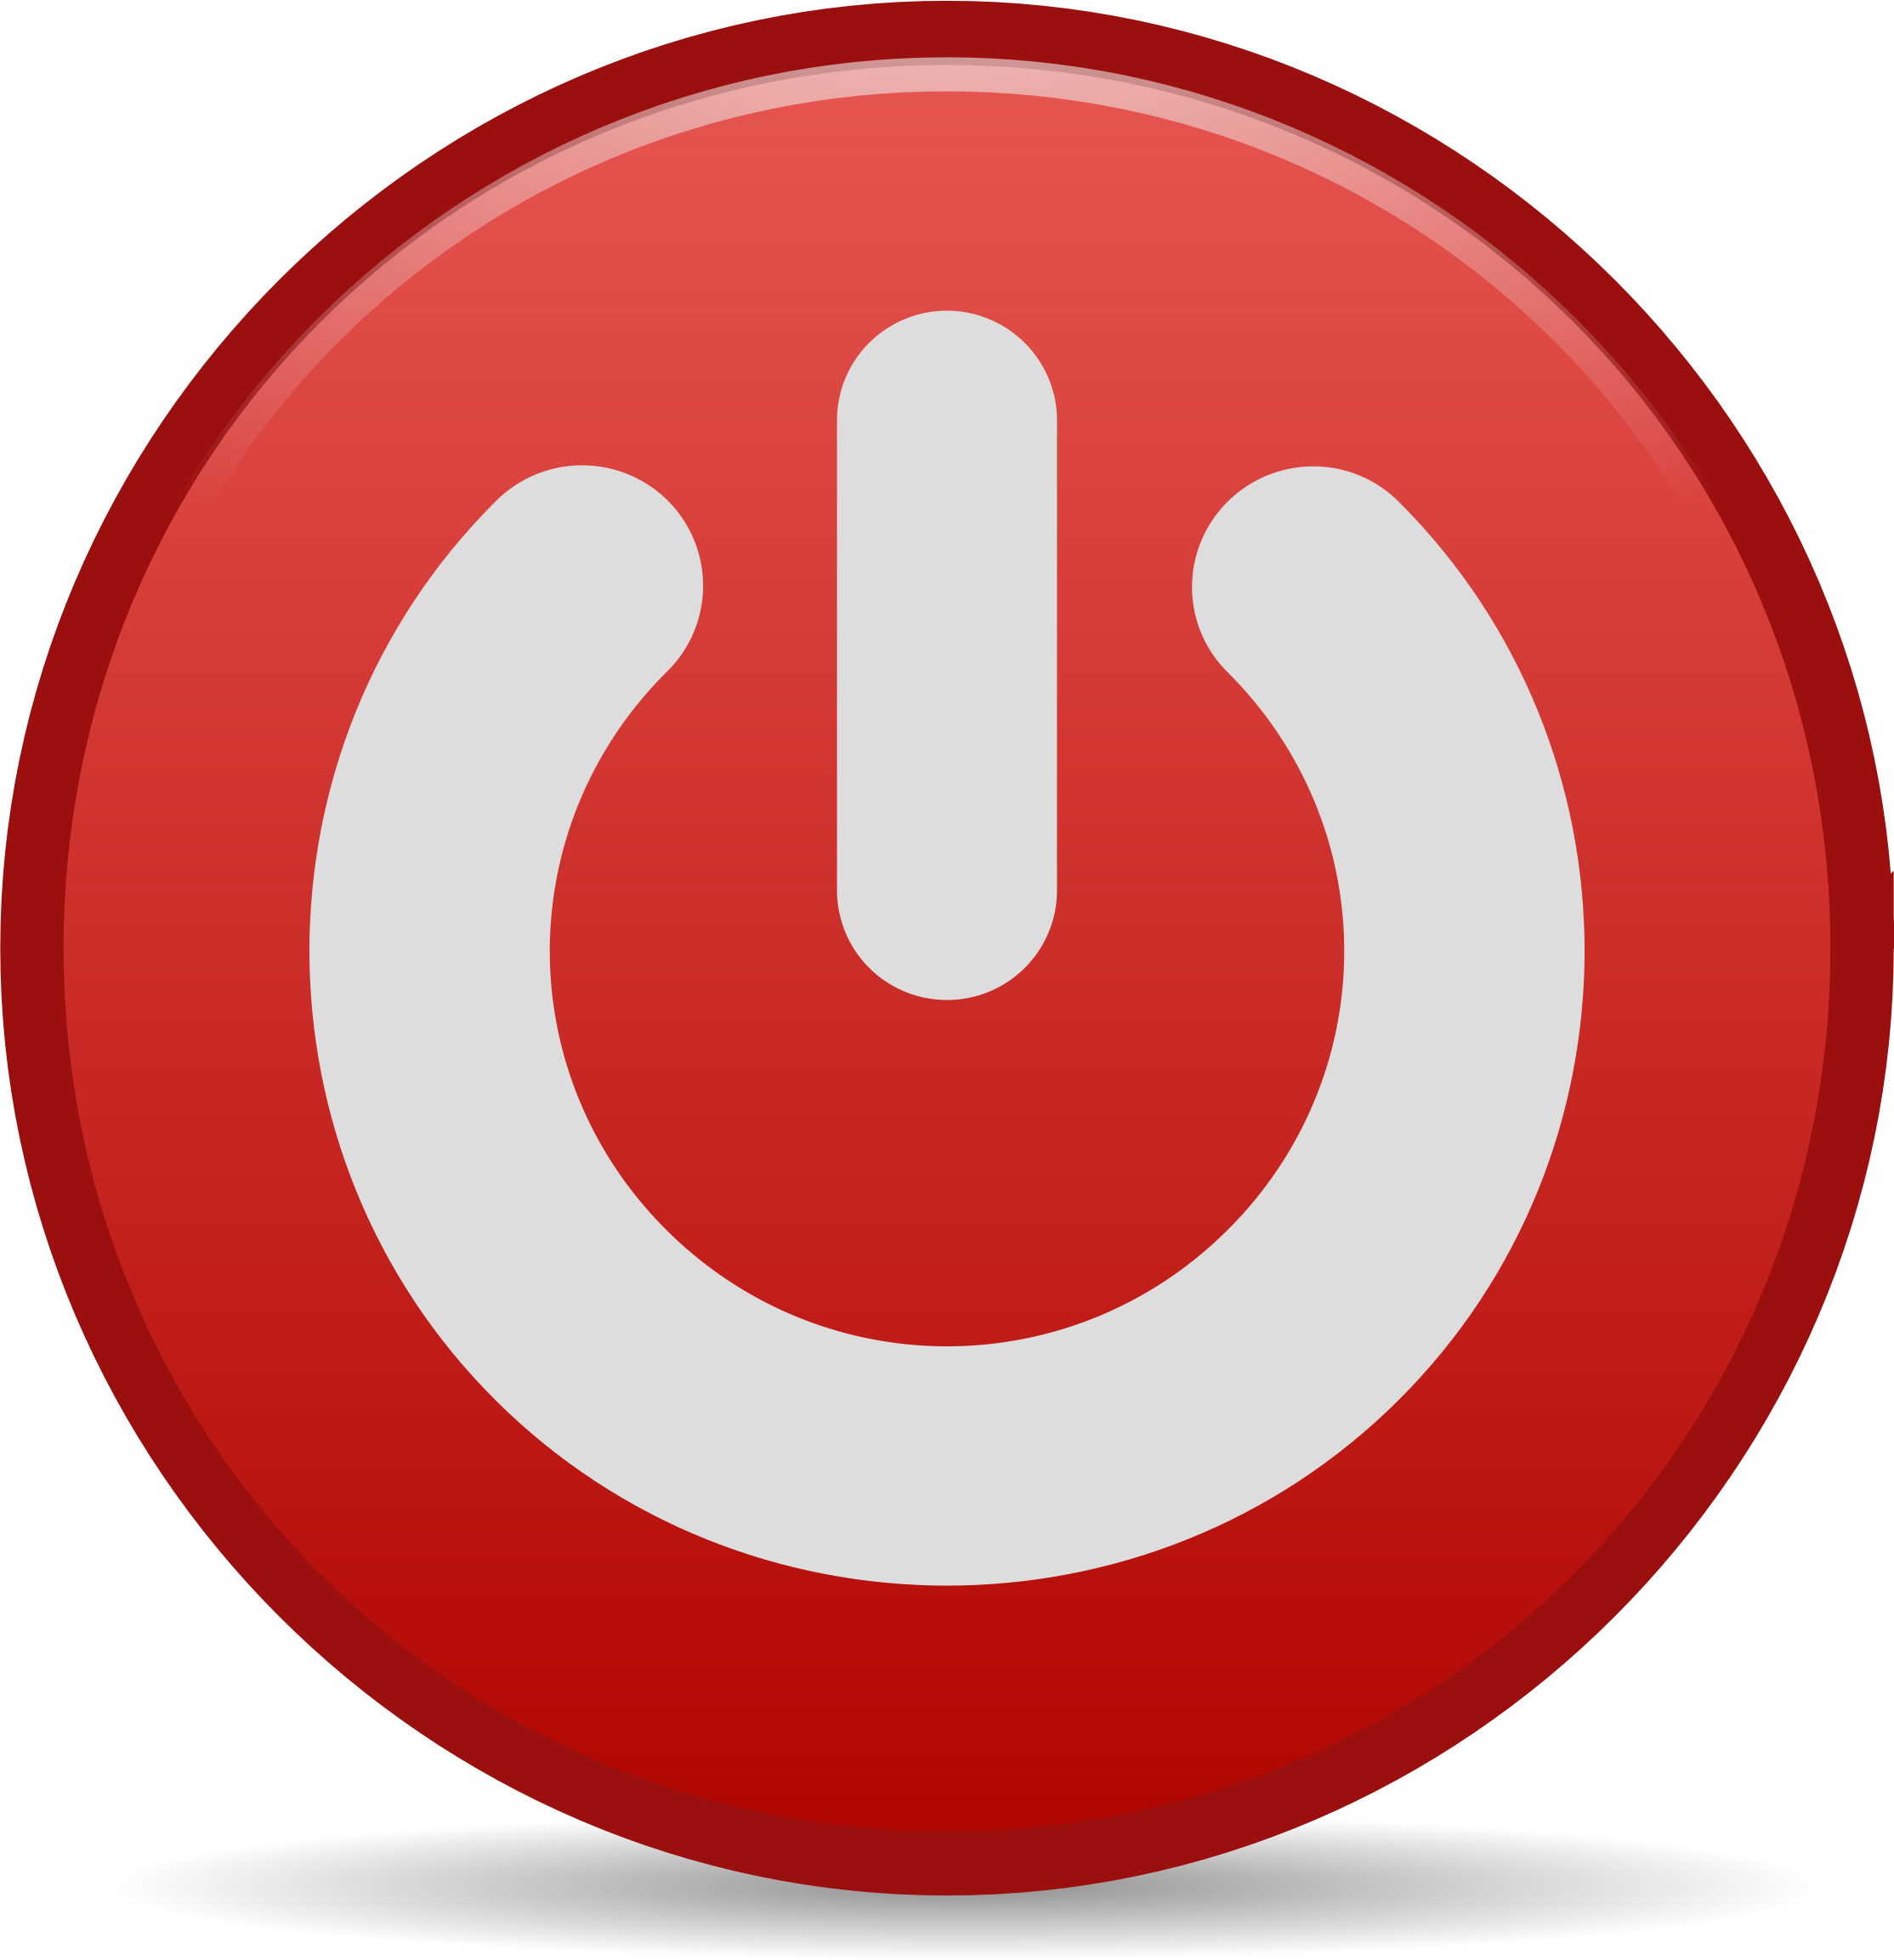 System Shutdown Icon by sixsixfive